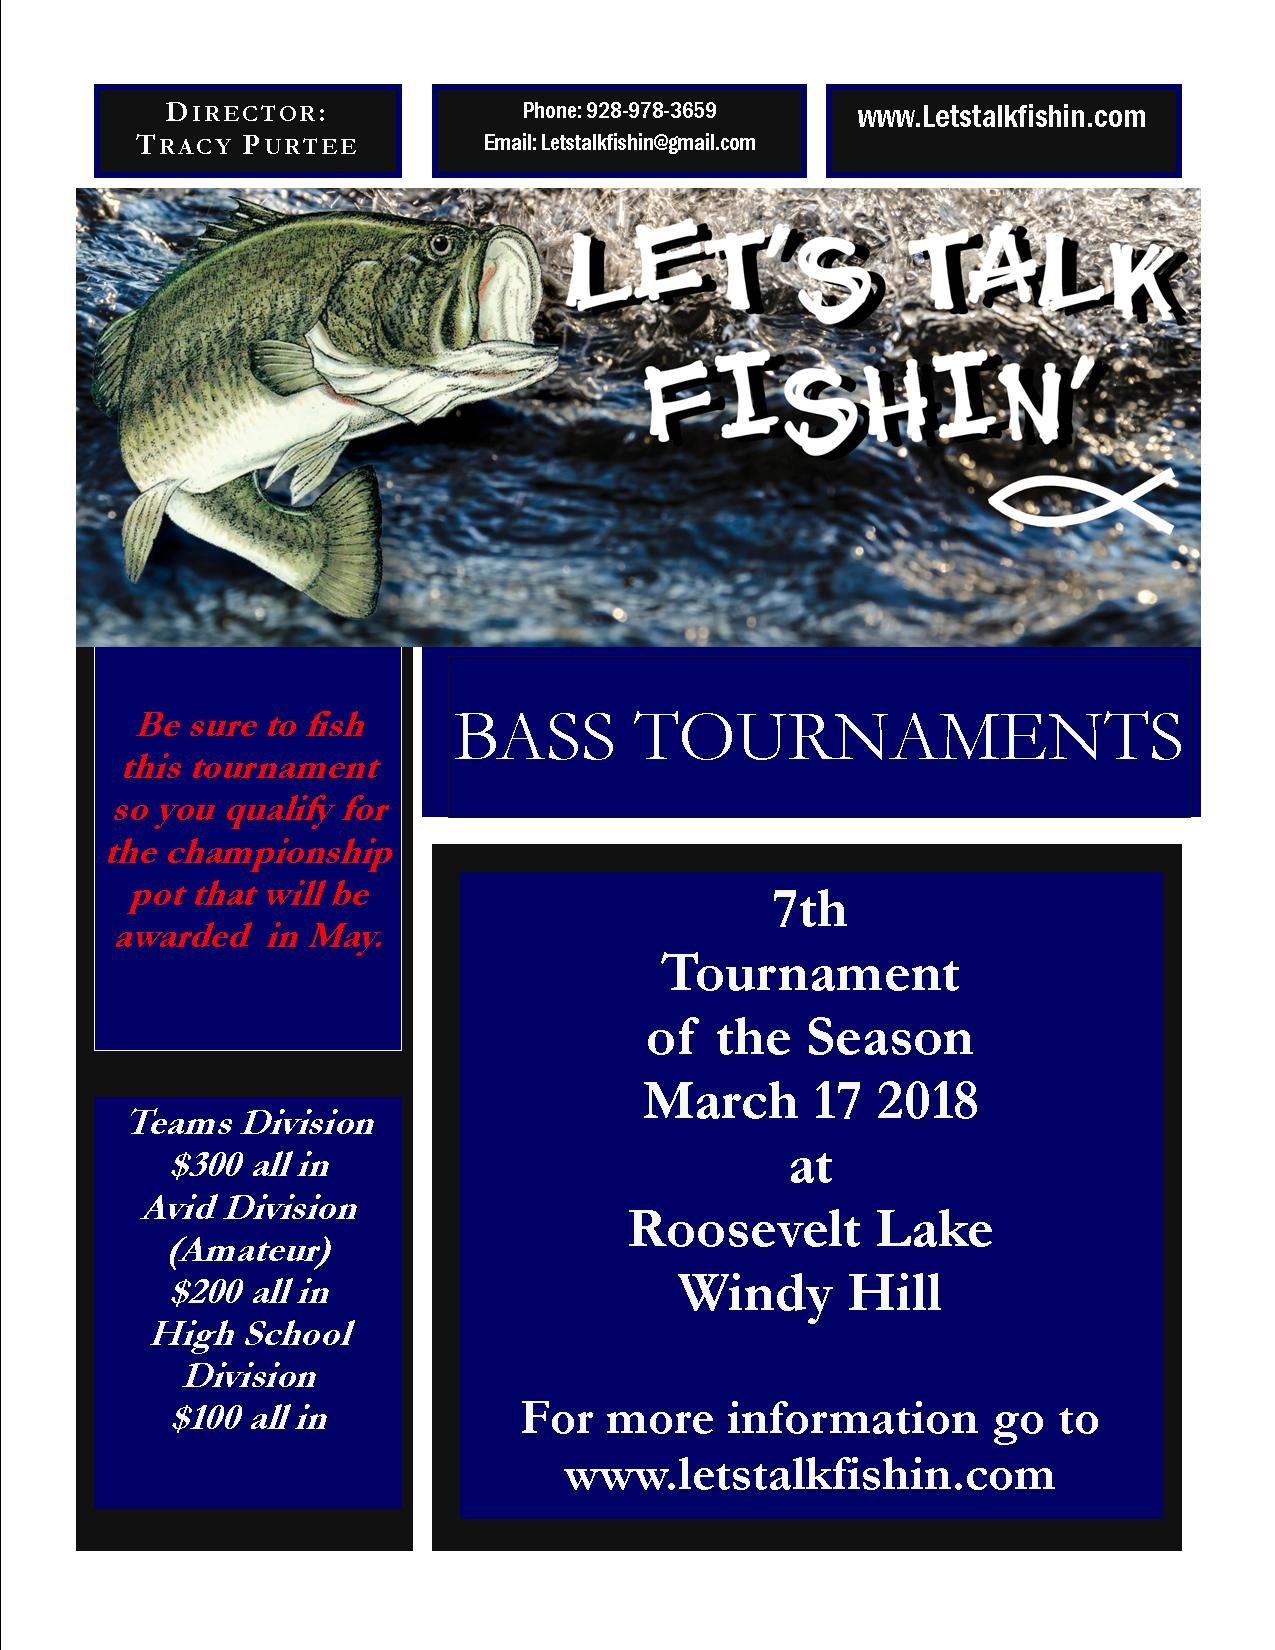 Click image for larger version  Name:7th Tournament.jpg Views:1055 Size:283.6 KB ID:96826